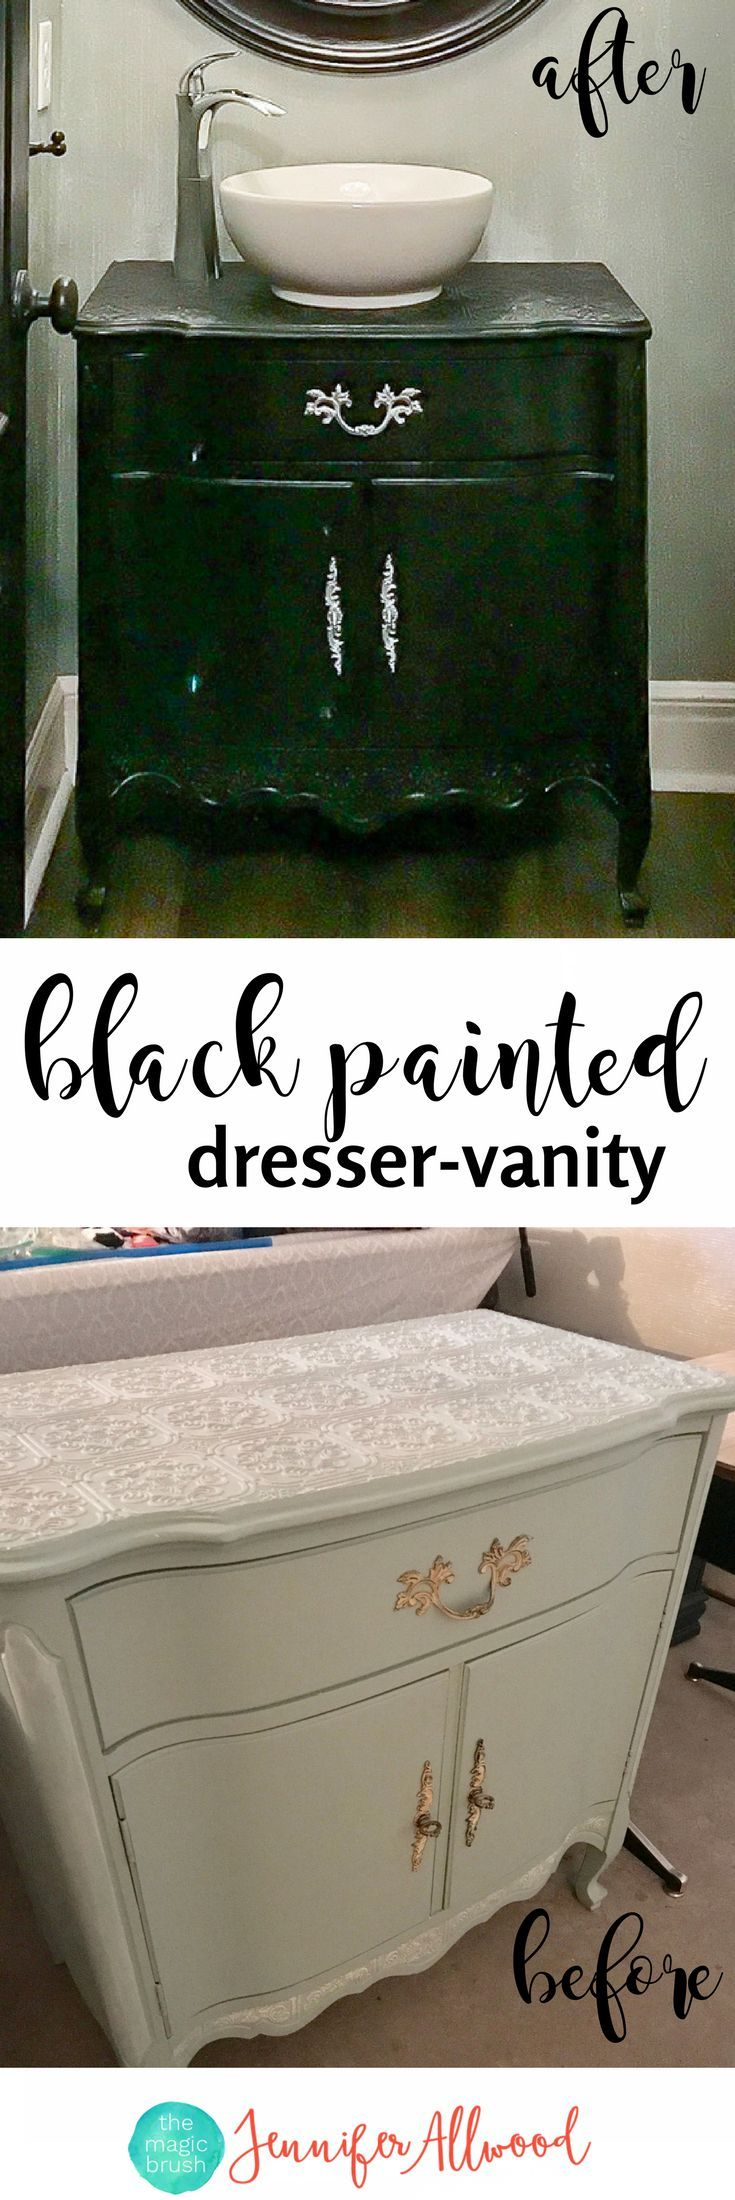 How to Make a Black Dresser Bathroom Vanity Cabinet | Convert an old dresser into a vanity cabinet | black & grey bathroom ideas by Jennifer Allwood